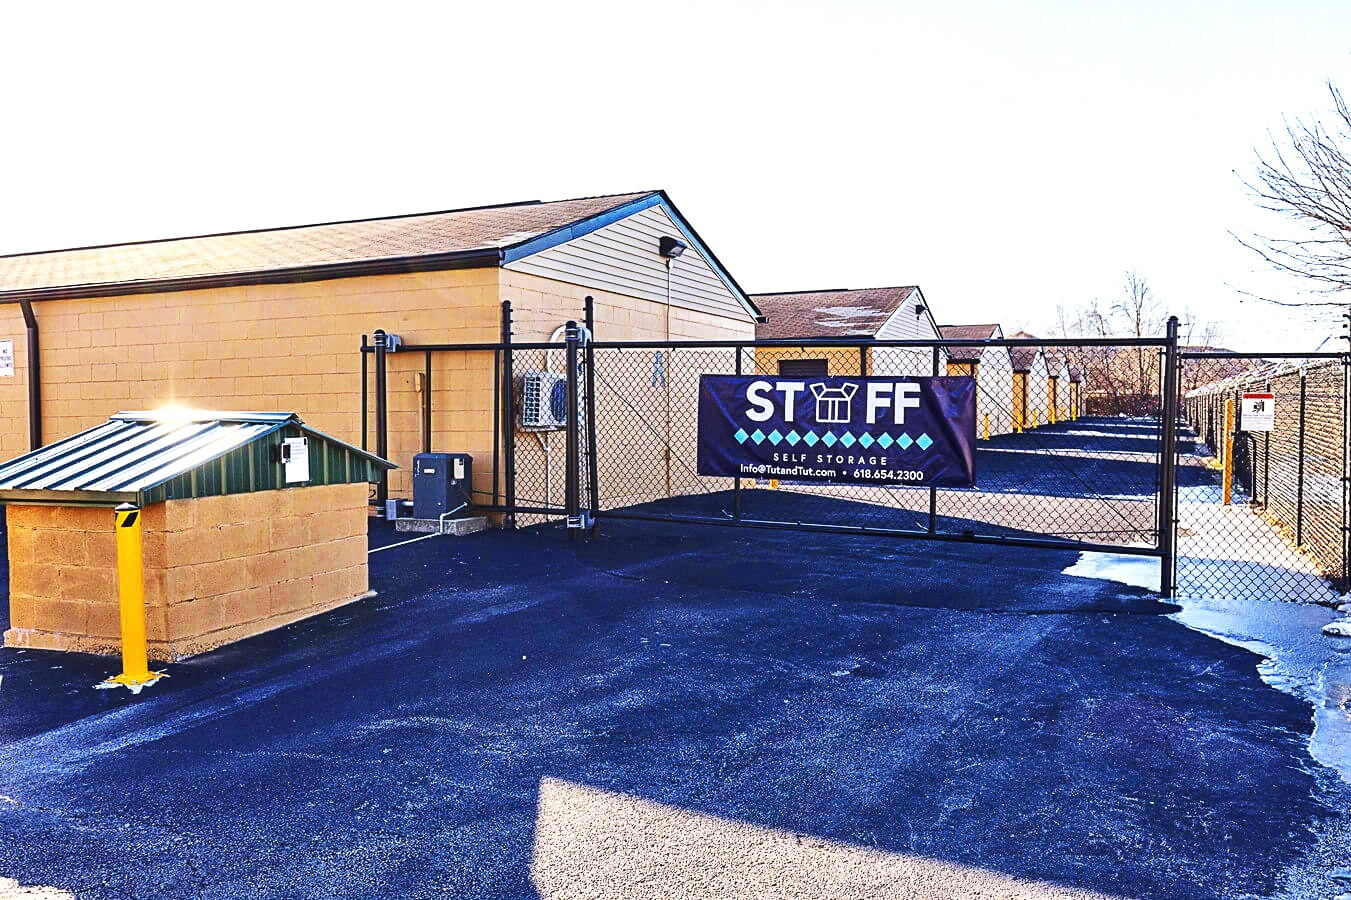 Self Storage Units In St. Clair County